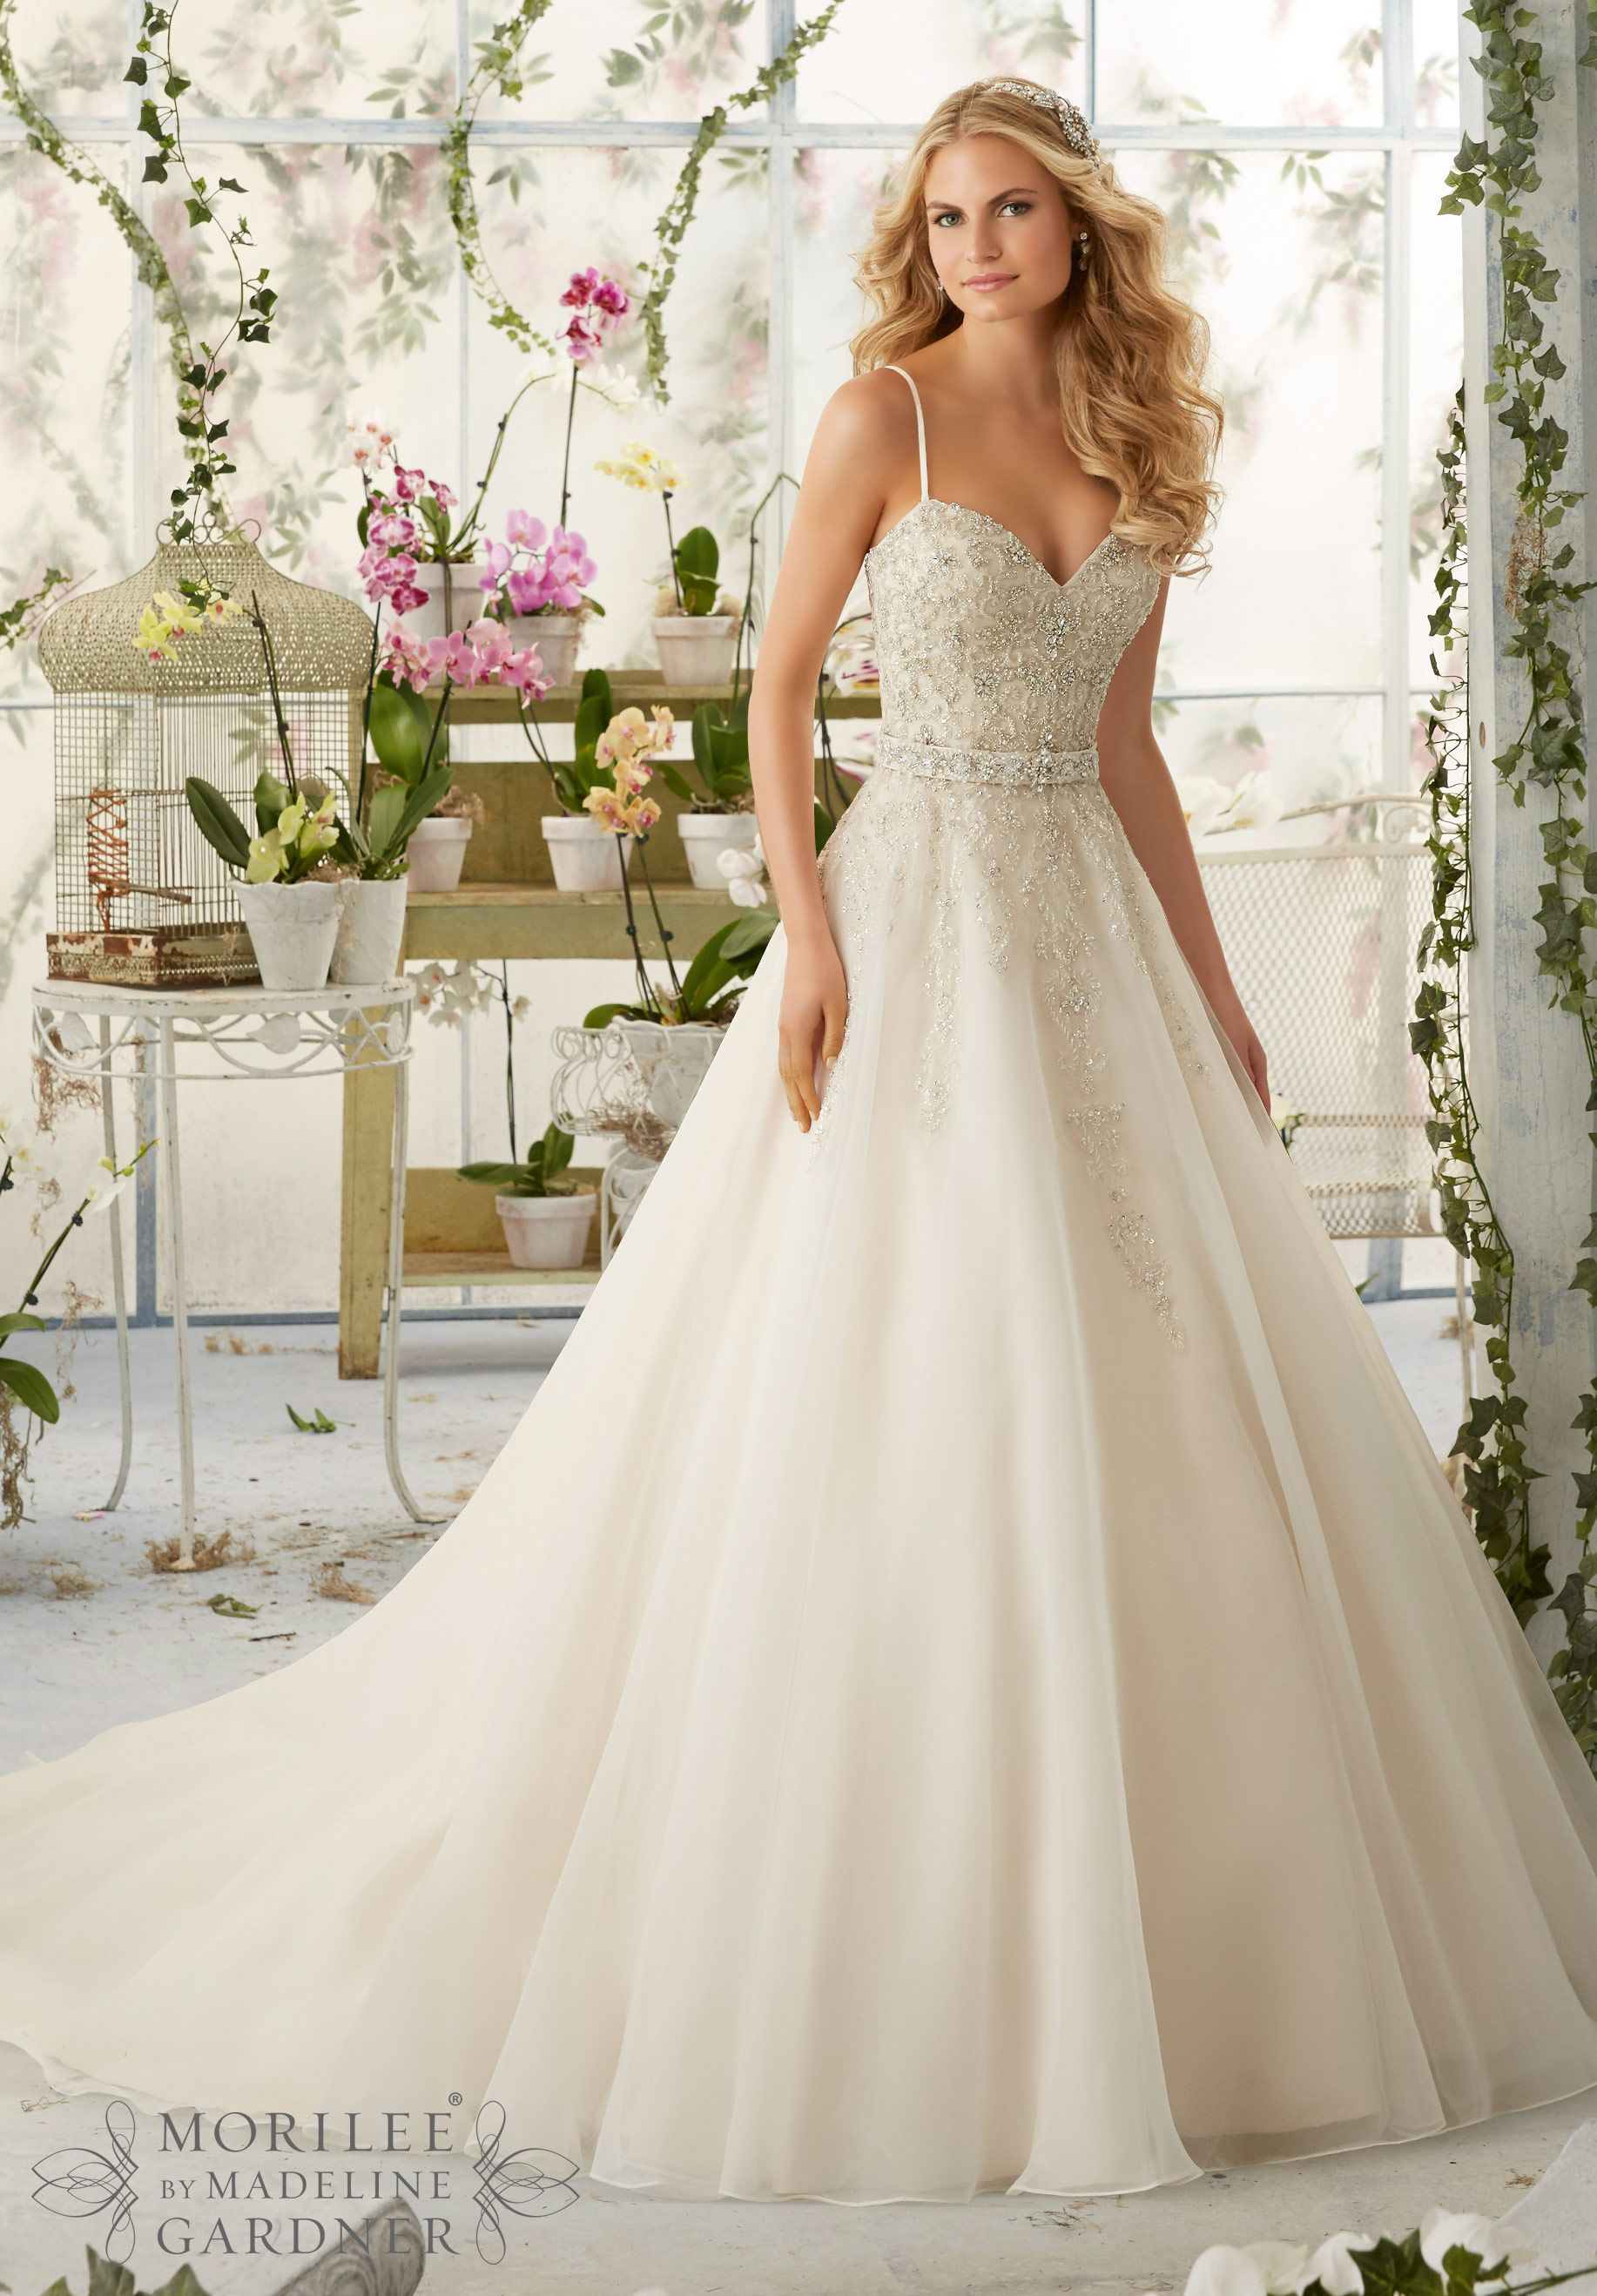 Mori lee gold wedding dress  Wedding Dresses and Wedding Gowns by Morilee featuring Crystal